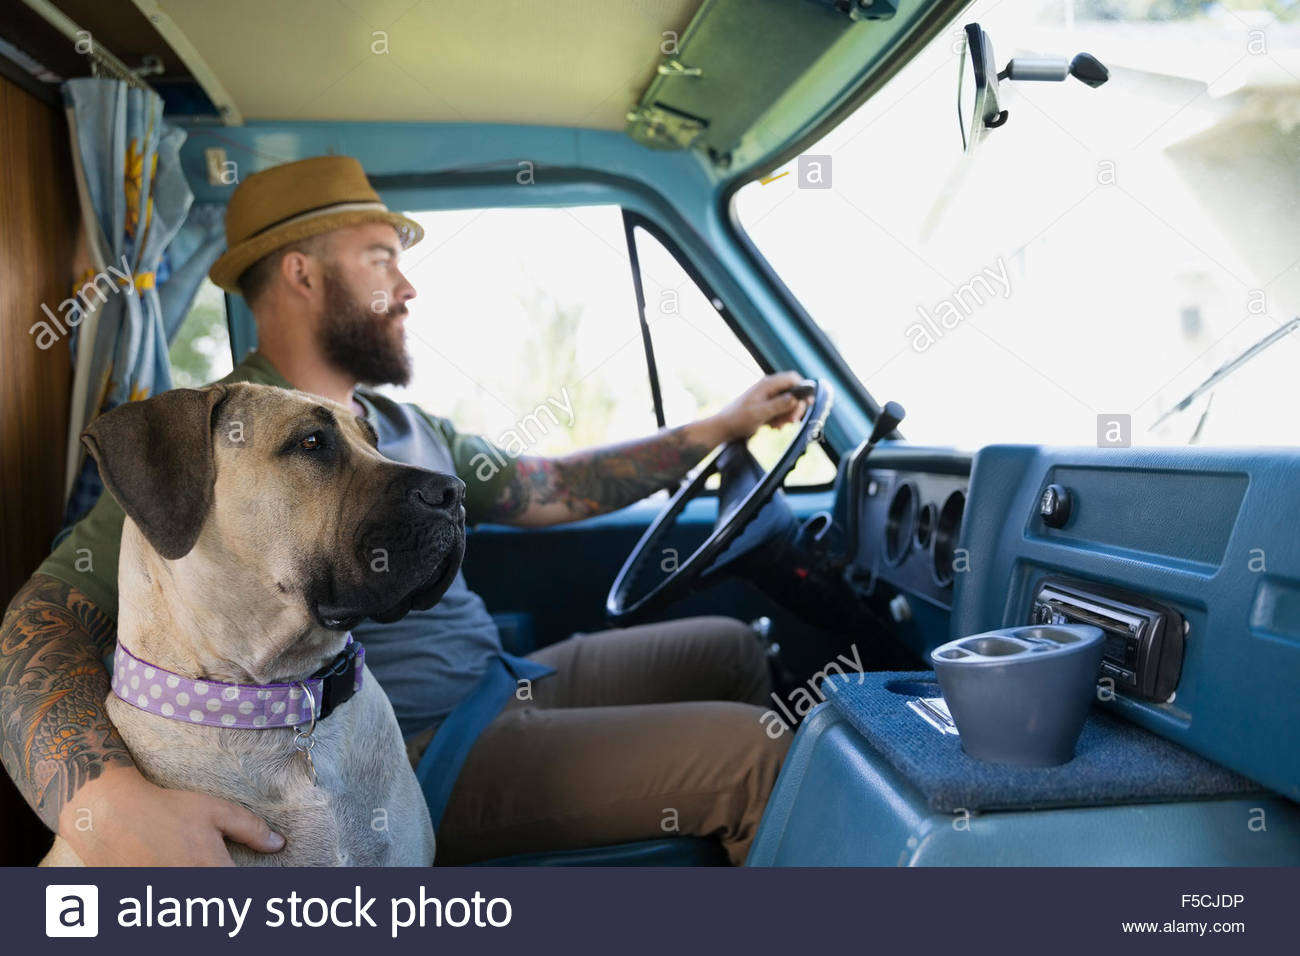 Dog riding with man in van - Stock Image